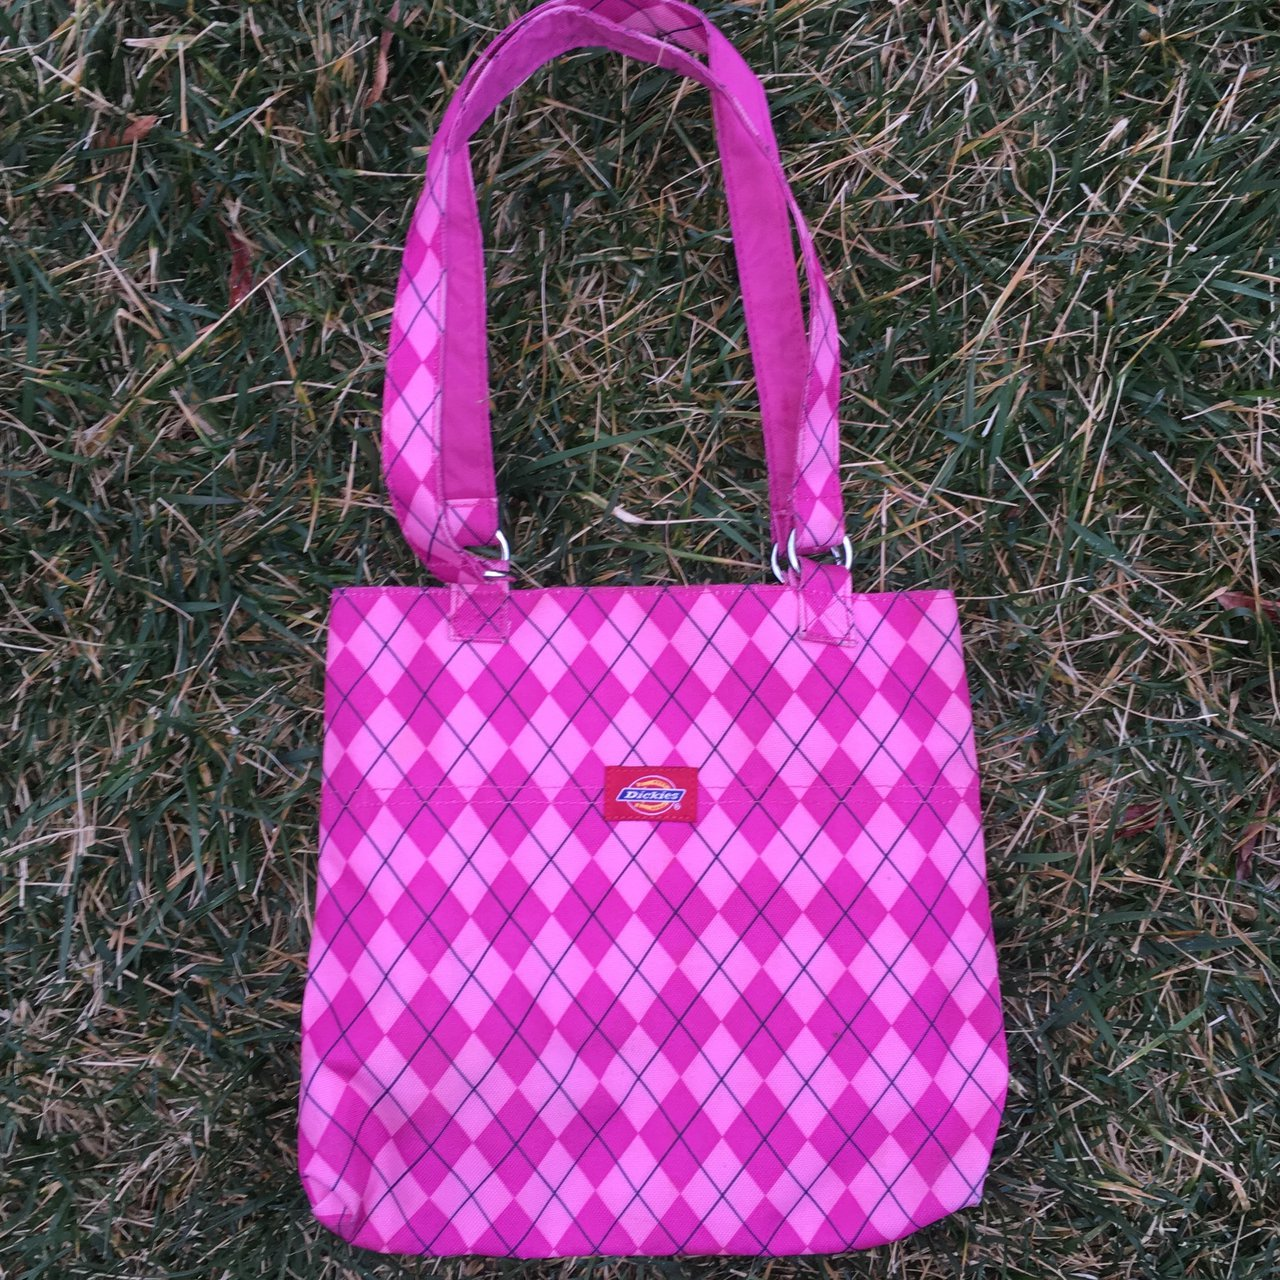 amazing pink plaid dickies bag 💖 omg this bag is so cute me - Depop 9c730110334f4